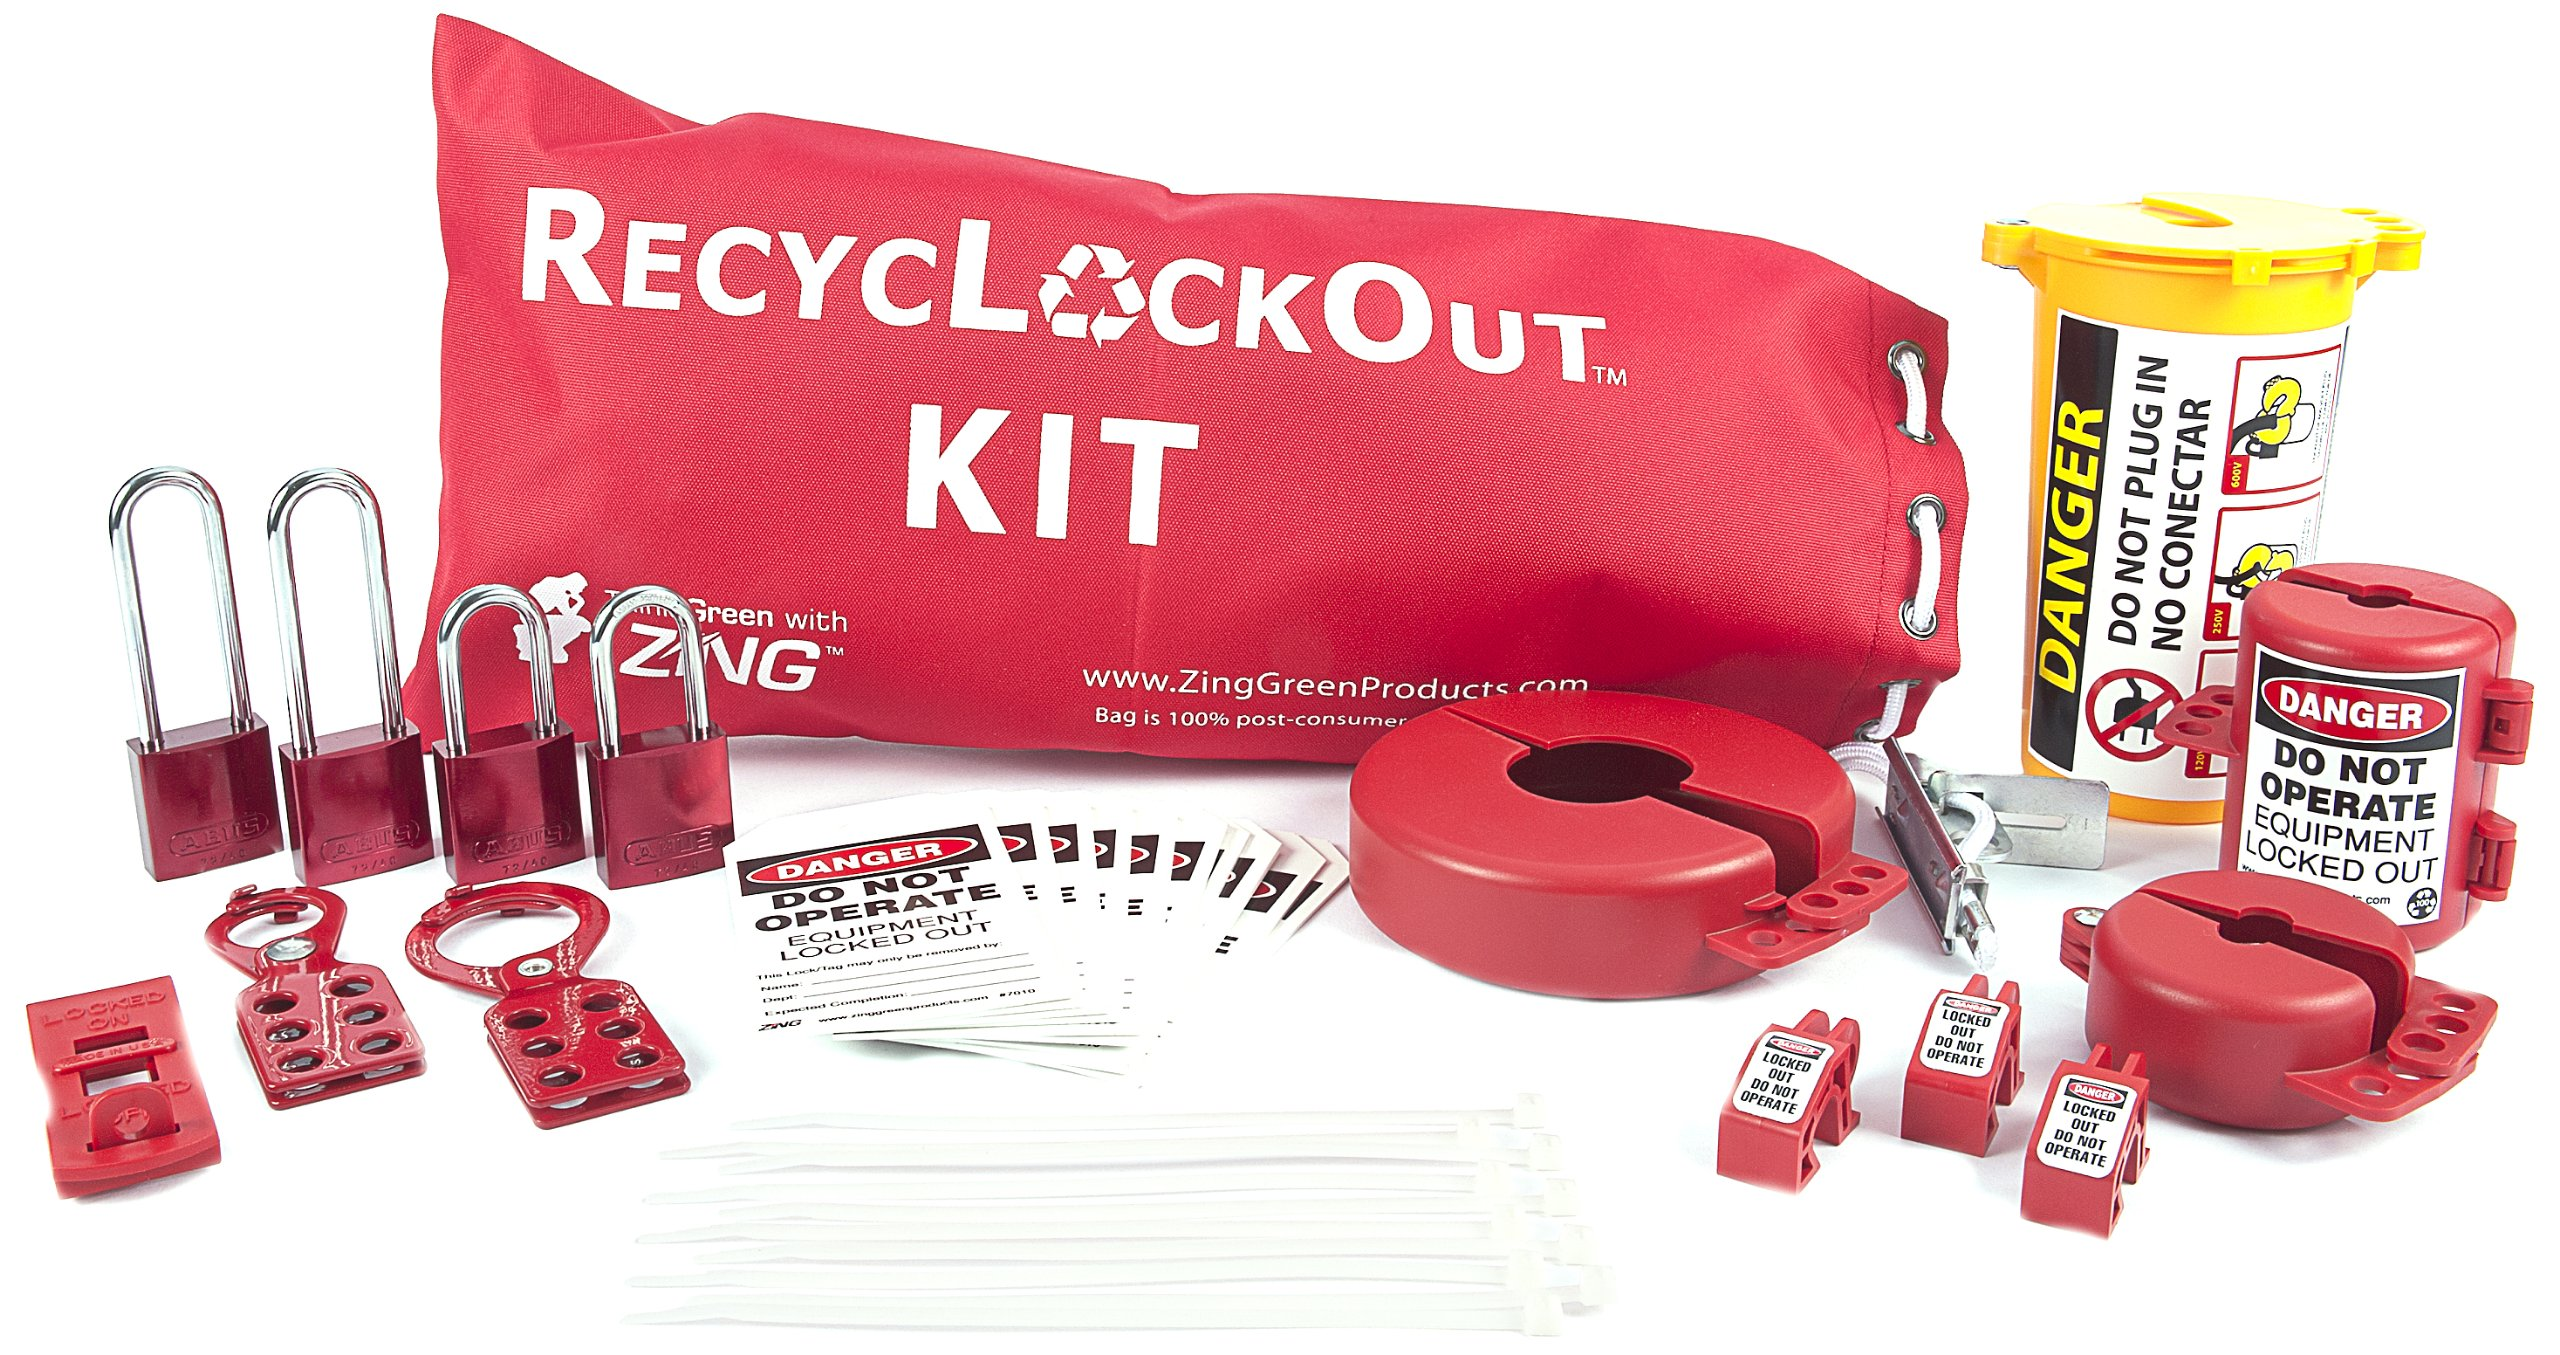 ZING 2724 RecycLockout Lockout Bag Kit with Aluminum Padlocks, 35 Components